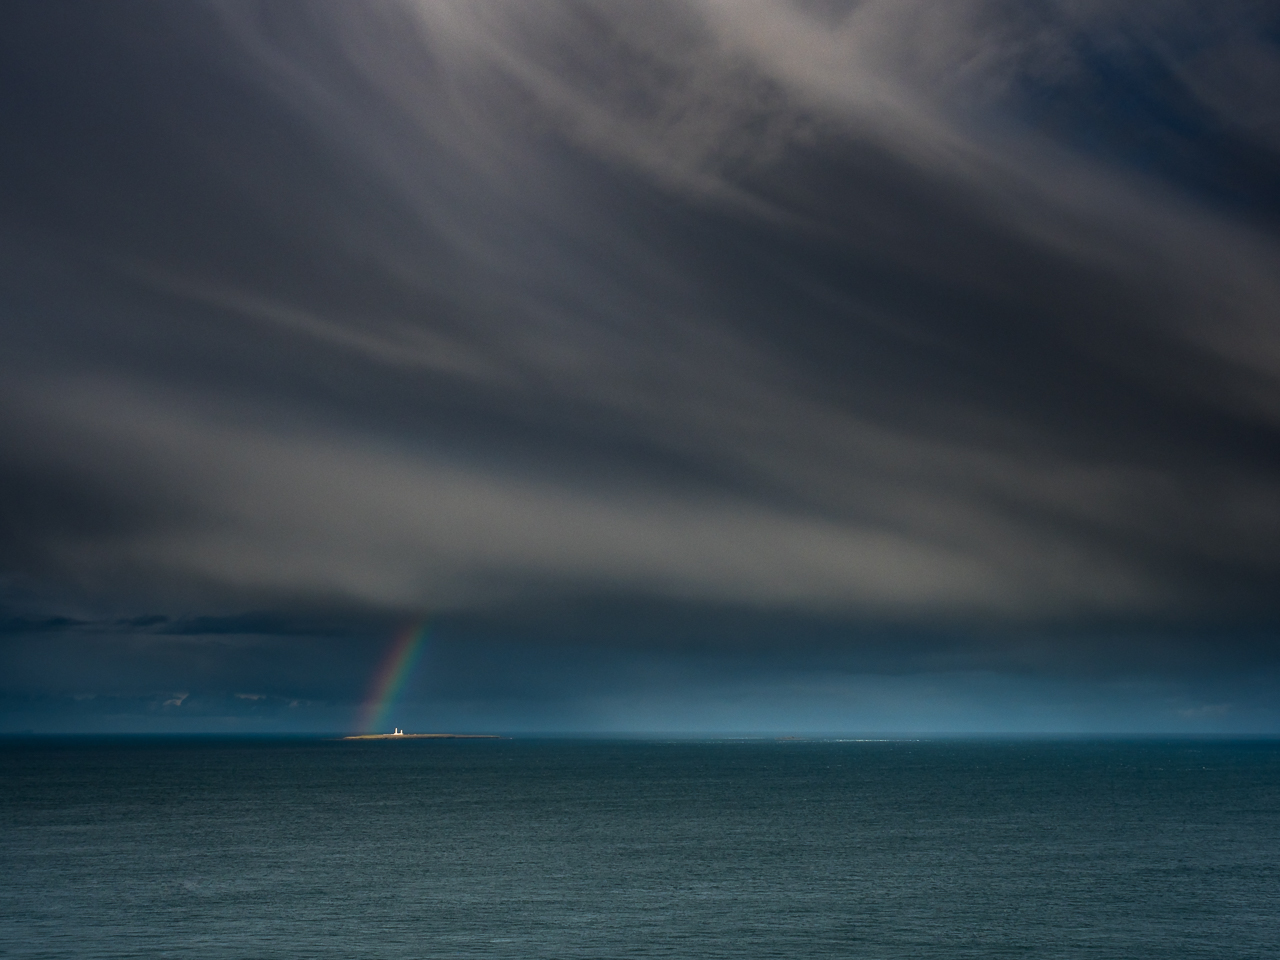 Travel photography Scotland: A rainbow frames Muckle Skerry Lighthouse in the Pentland Firth, near John o' Groats, Scotland.